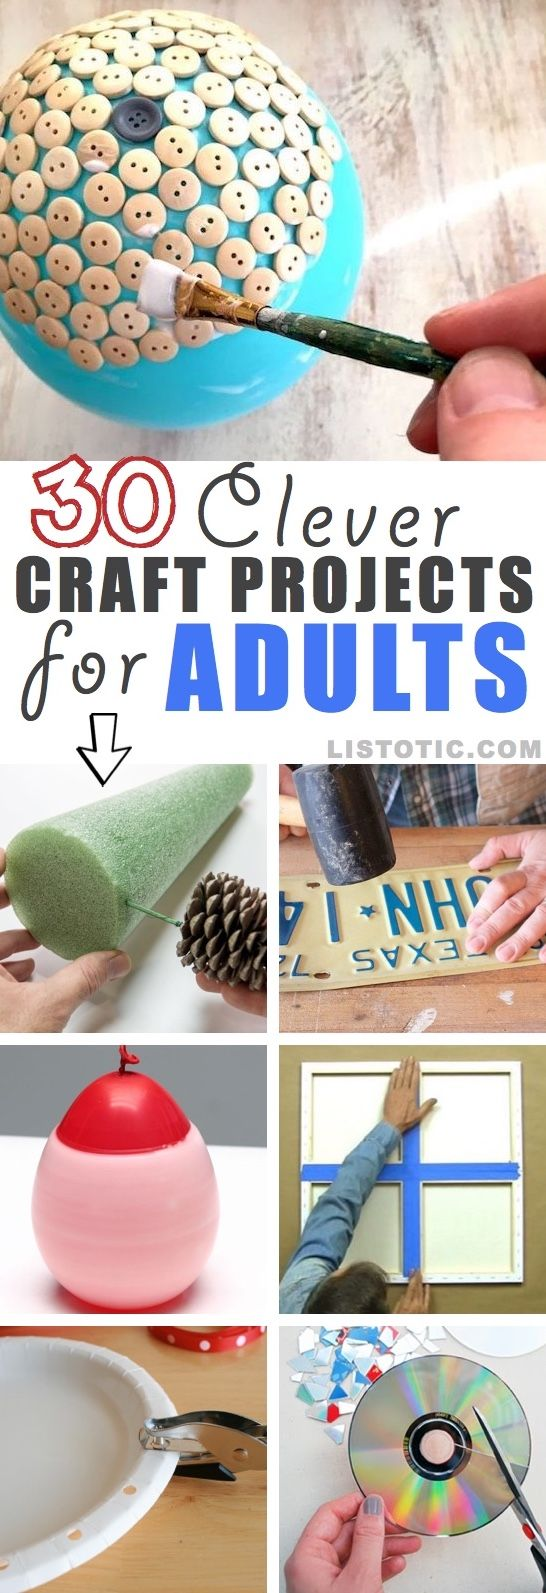 Easy DIY craft ideas for adults and teens for the home